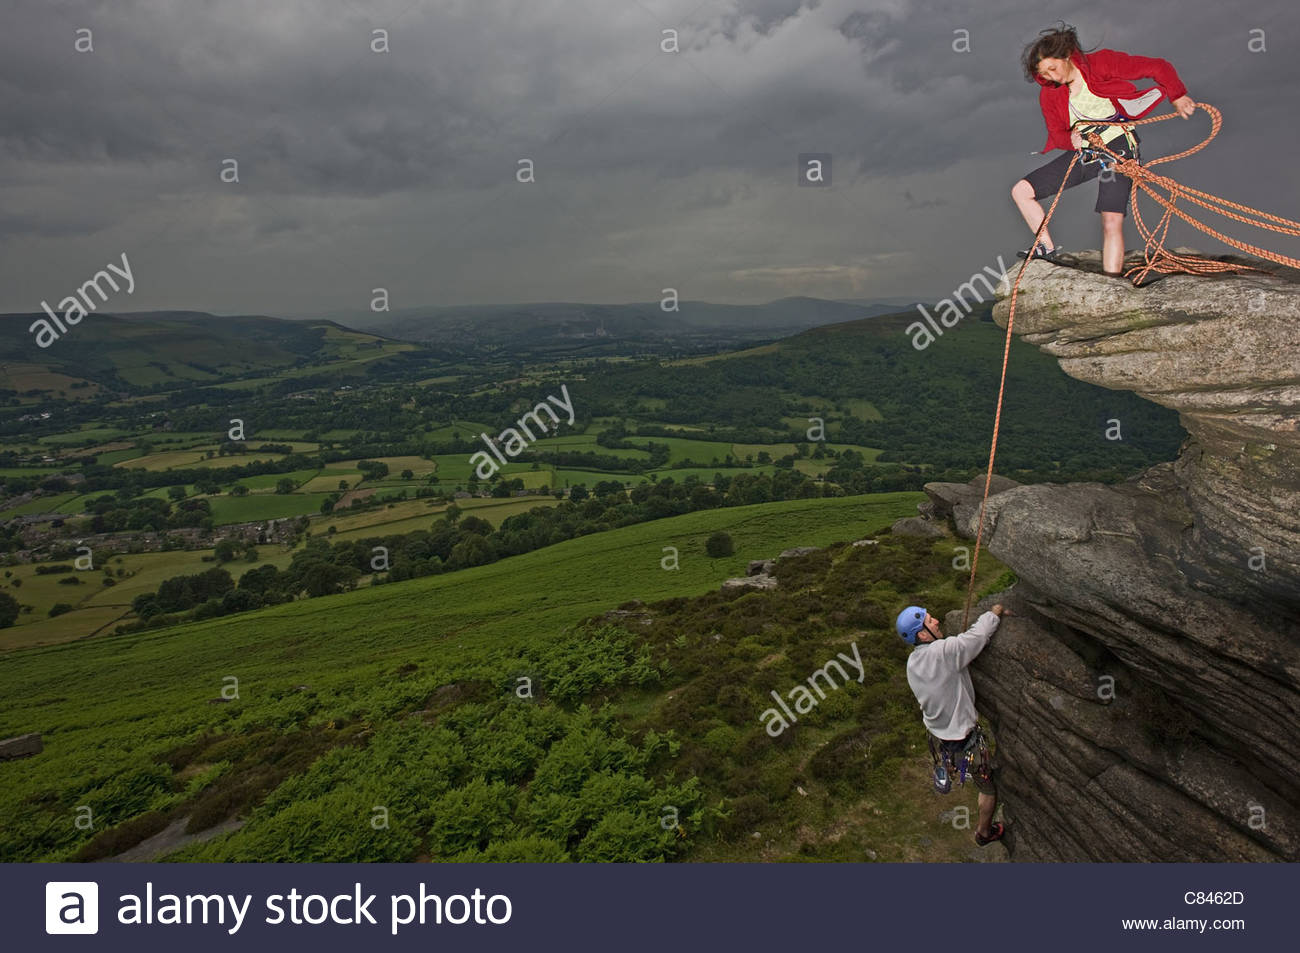 Rock climbers scaling steep rock face - Stock Image